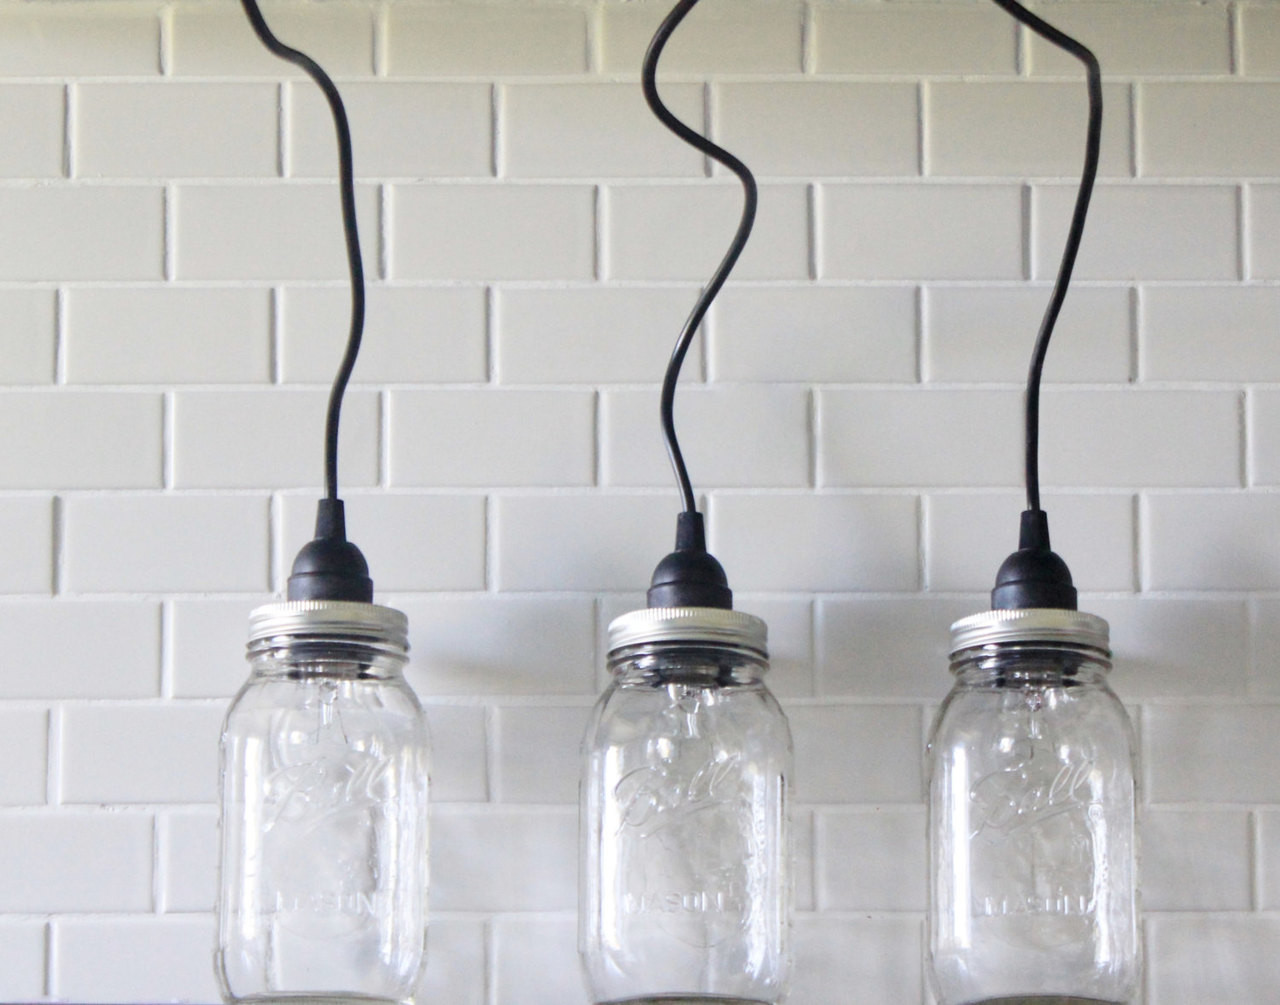 Mason jar lighting set of 3 hanging large clear mason jar pendant mason jar lighting set of 3 hanging large clear mason jar pendant lights handmade rustic country aloadofball Image collections